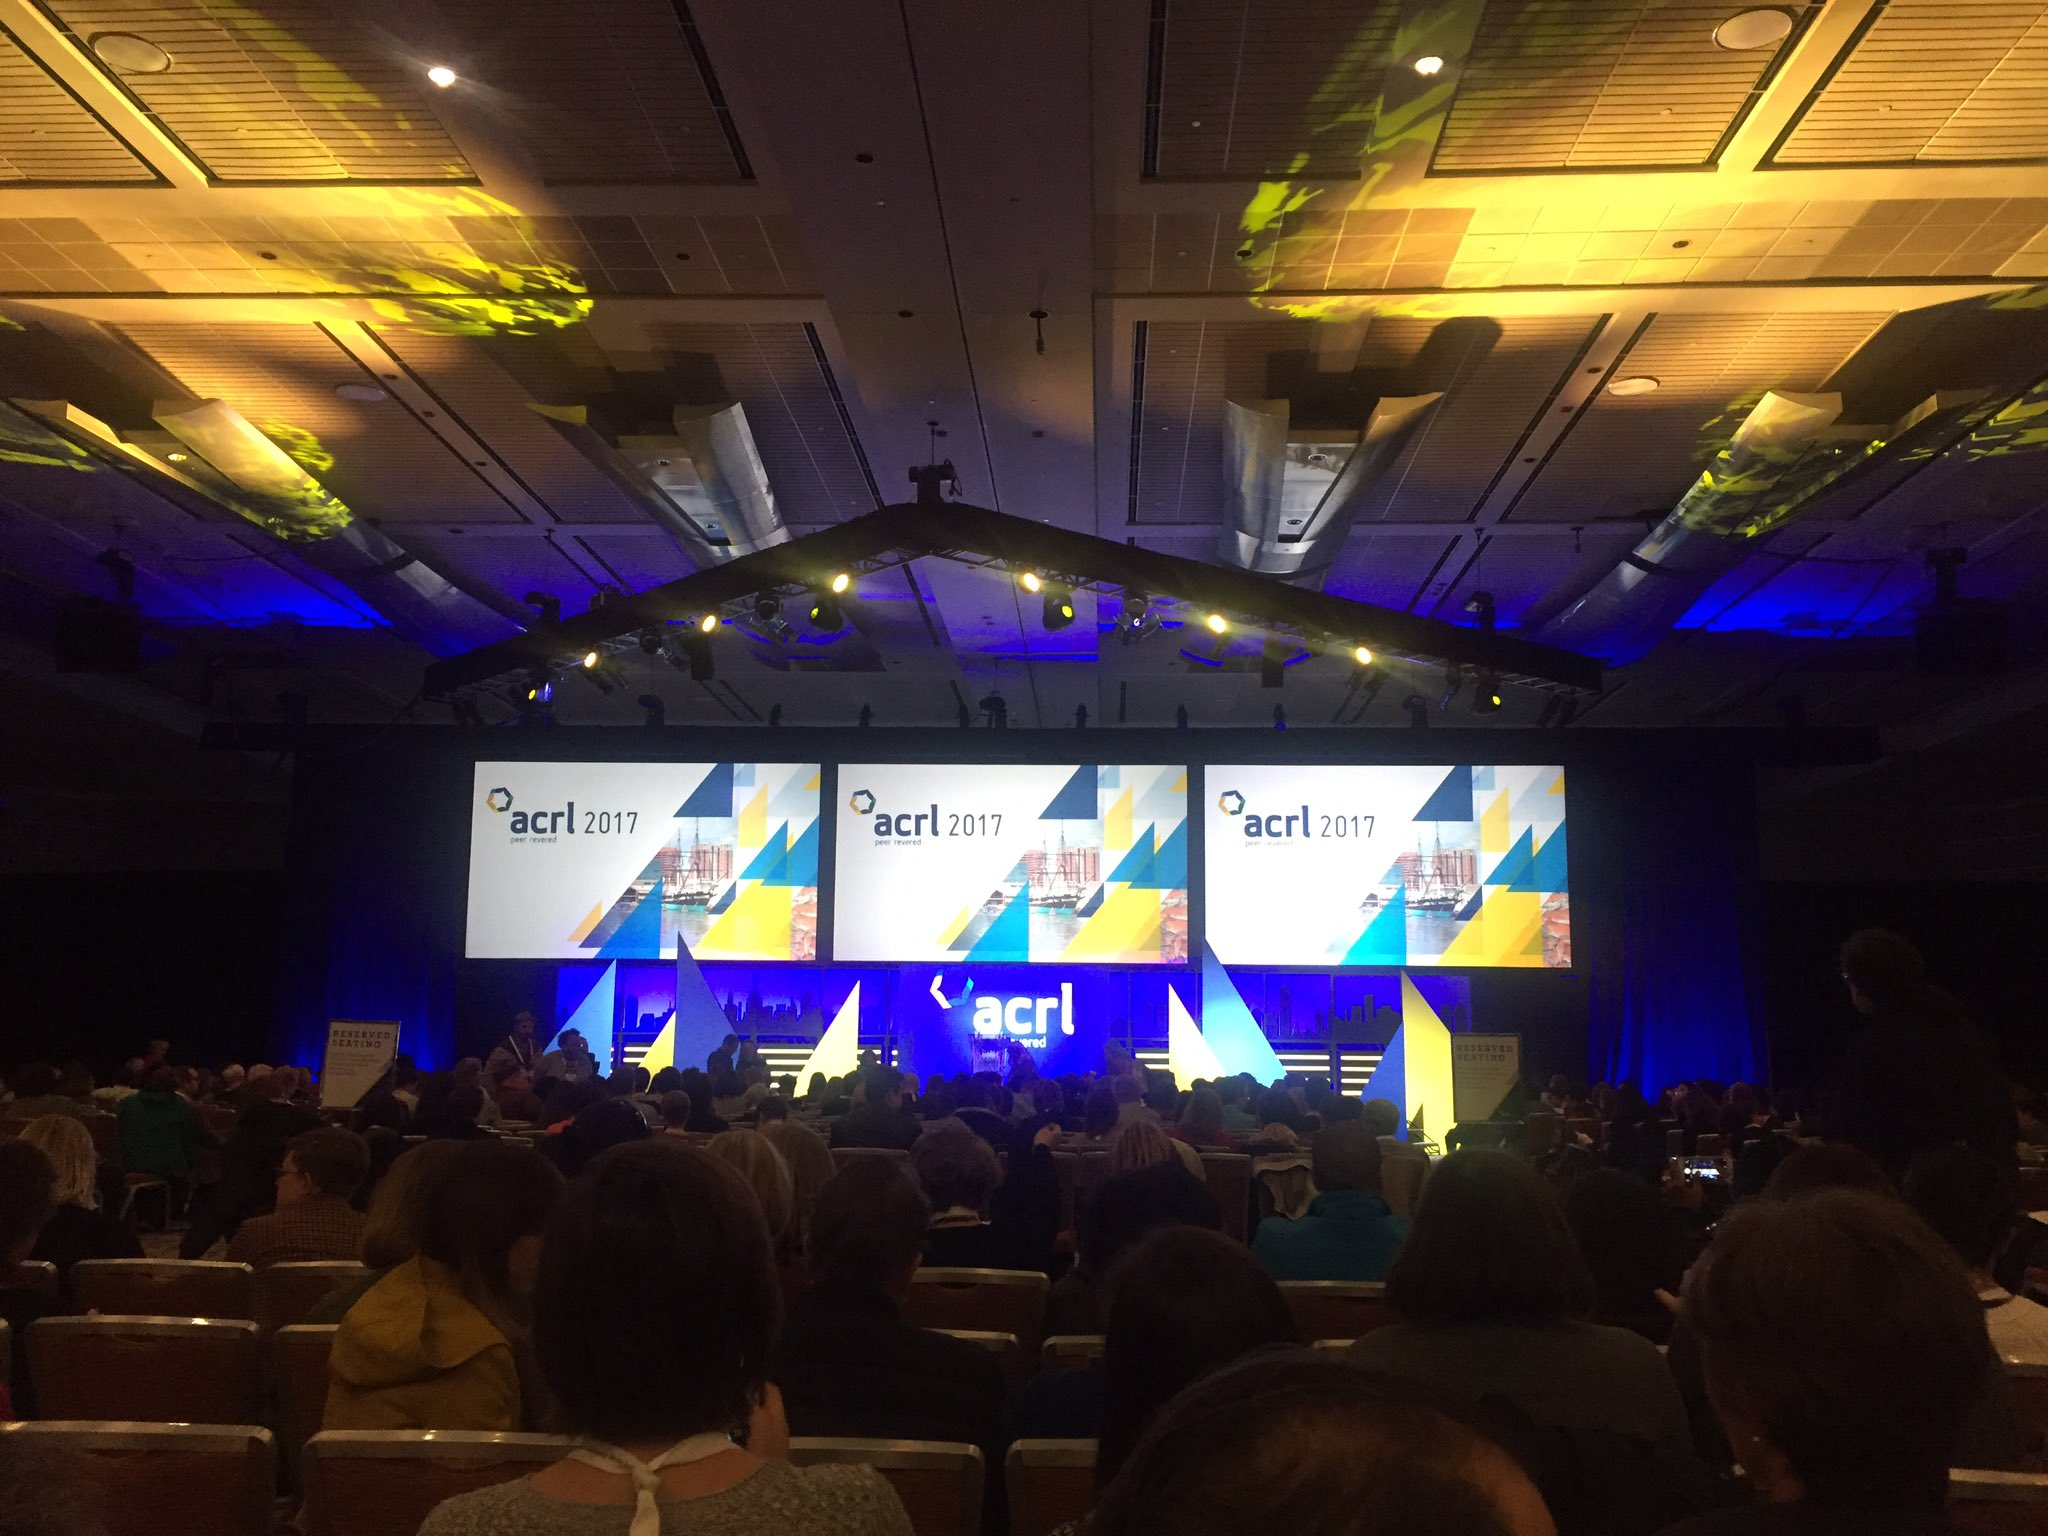 Ready for the opening keynote at my first ACRL conference! Who else is here? Let's meet up! #acrl2017 https://t.co/OObFgZrHhe